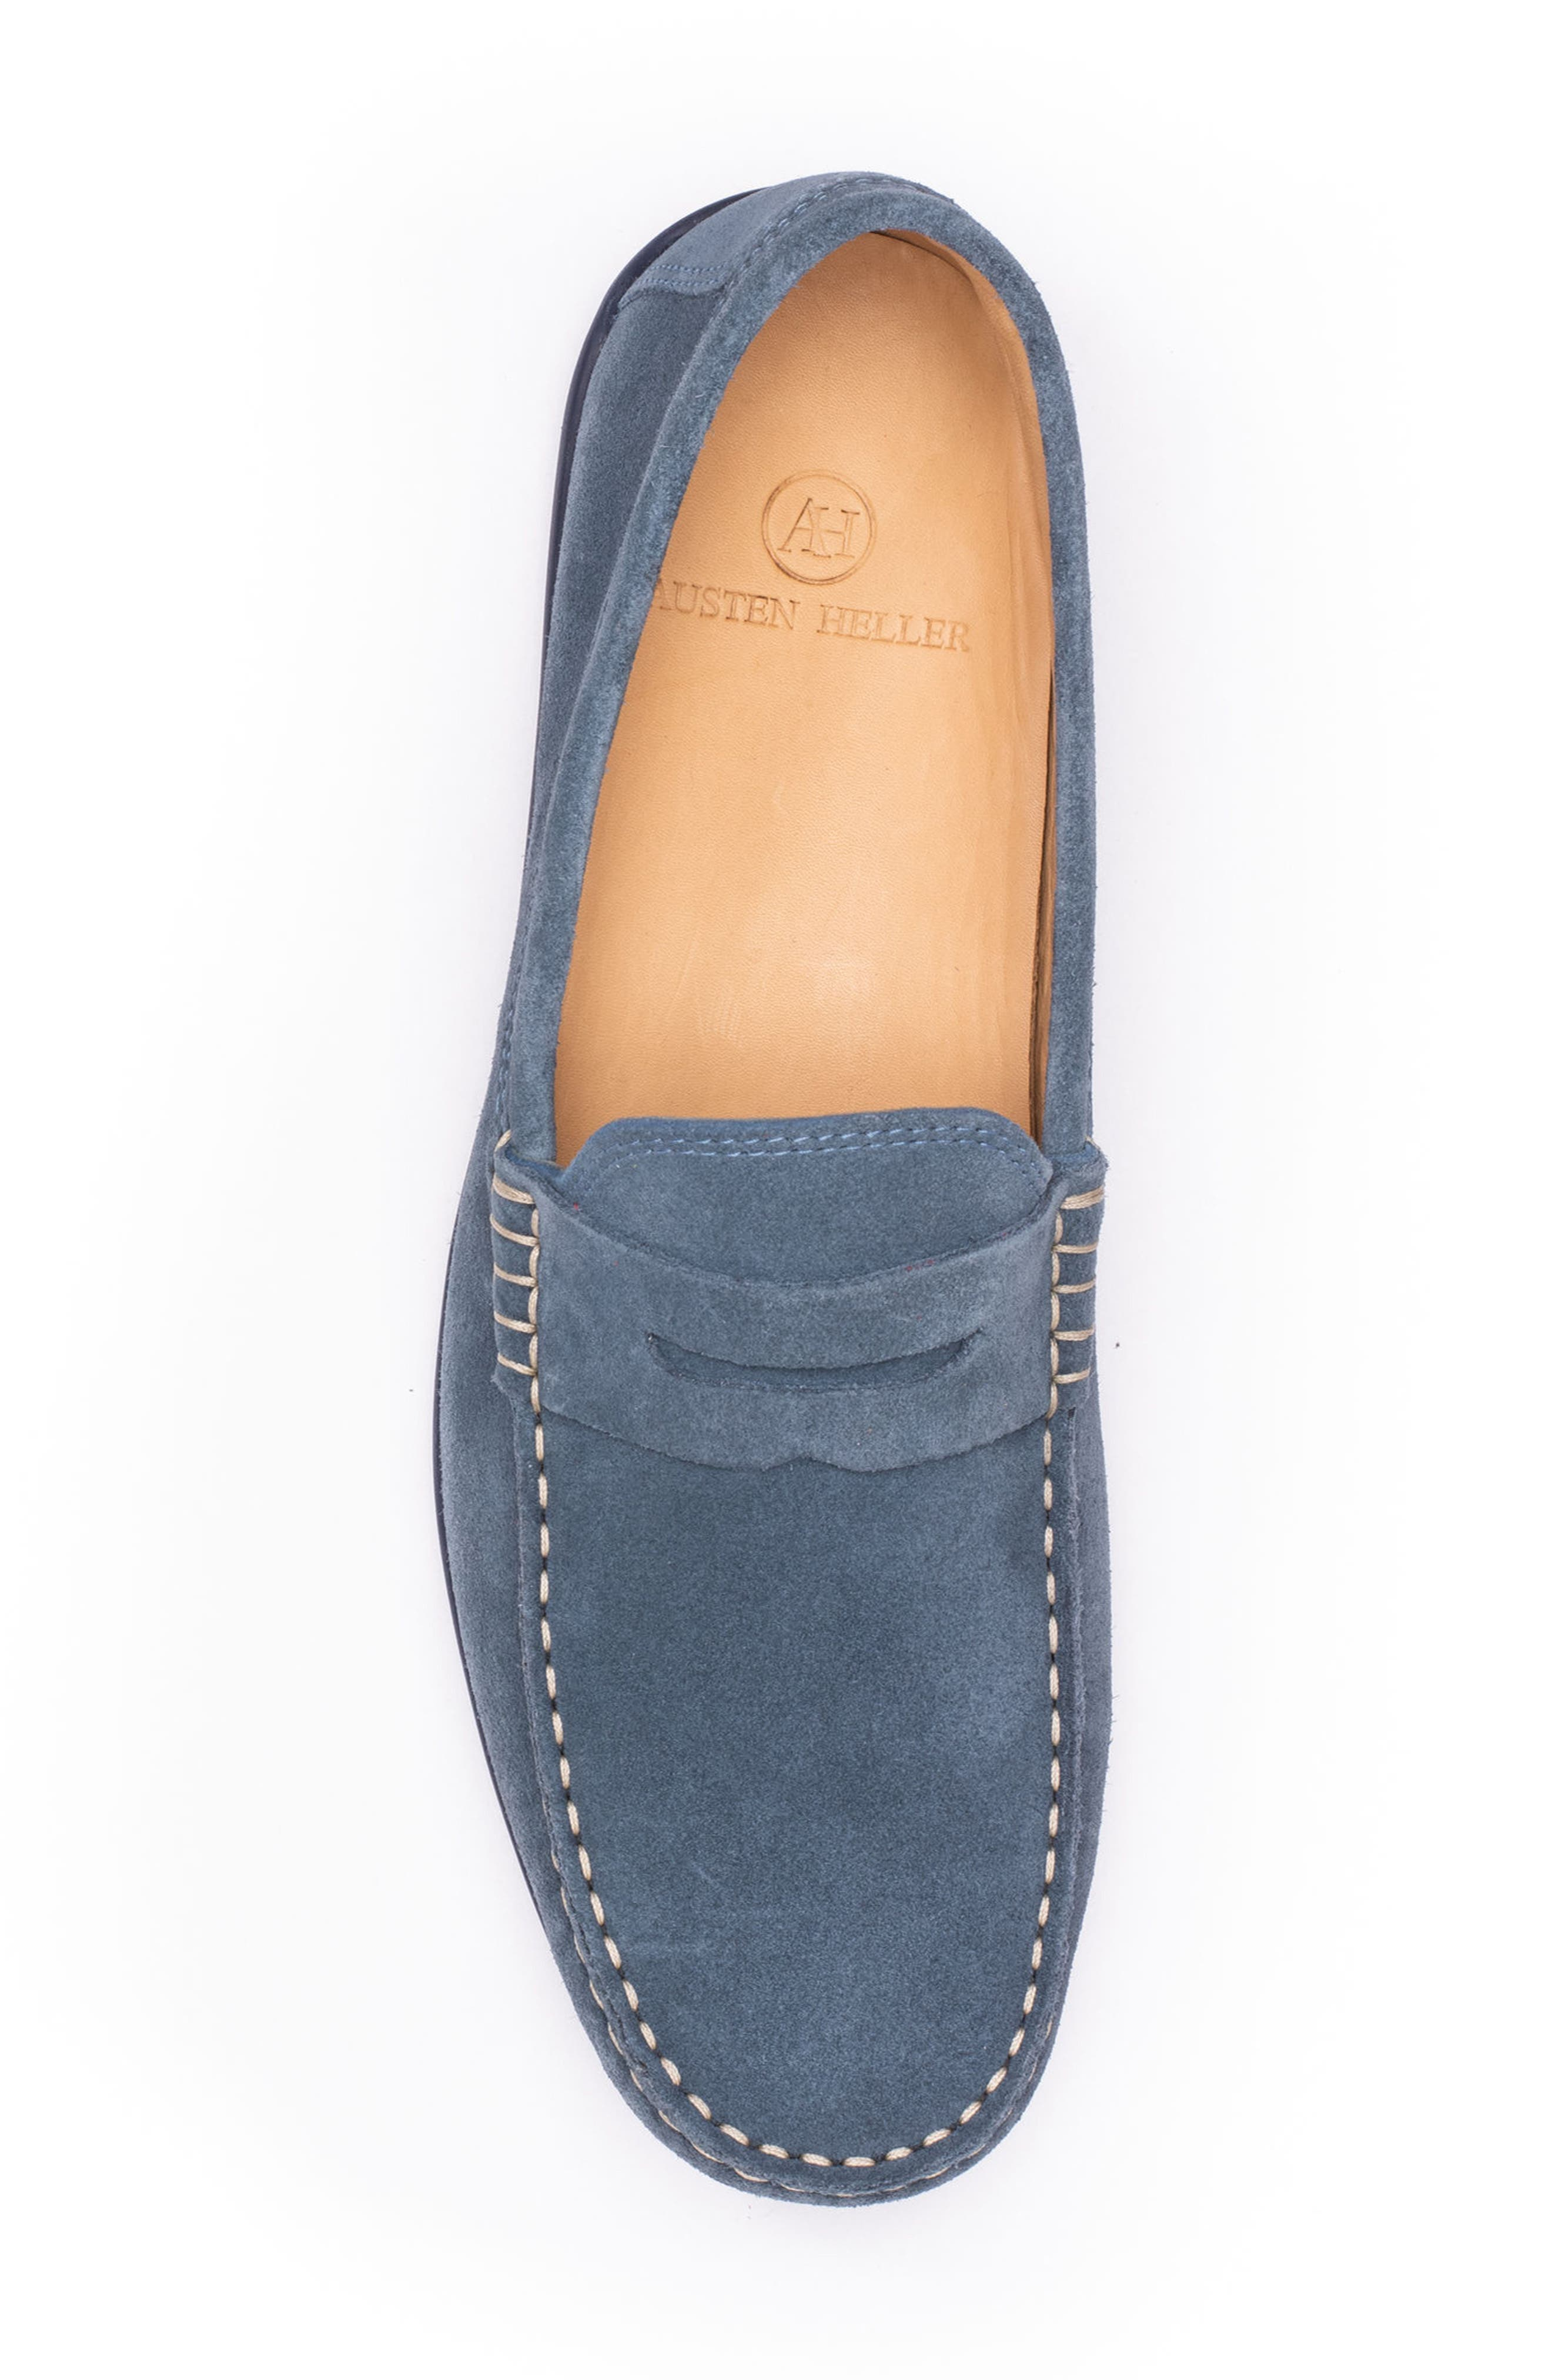 'Parkers' Penny Loafer,                             Alternate thumbnail 5, color,                             Indigo